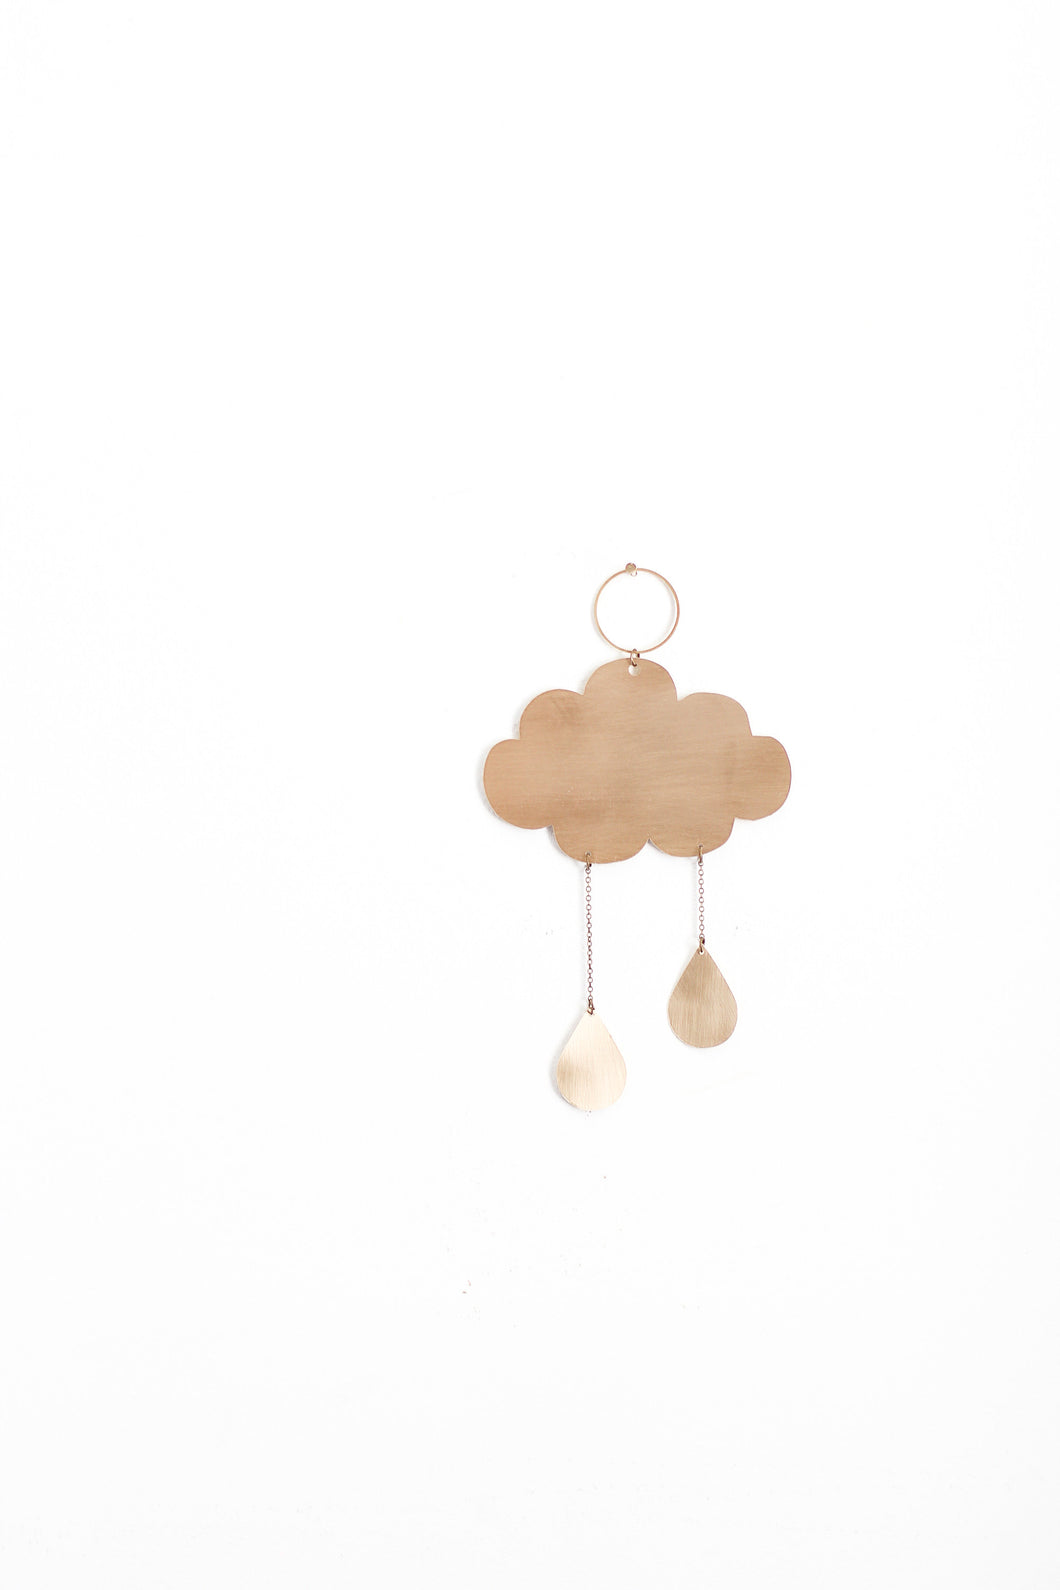 Rain Cloud Mini Wall Hanging | Copper Wall Hanging | Brass Wall Hanging | Wall Decor | Home Decor | Metal Wall Hanging | Nursery Wall Decor